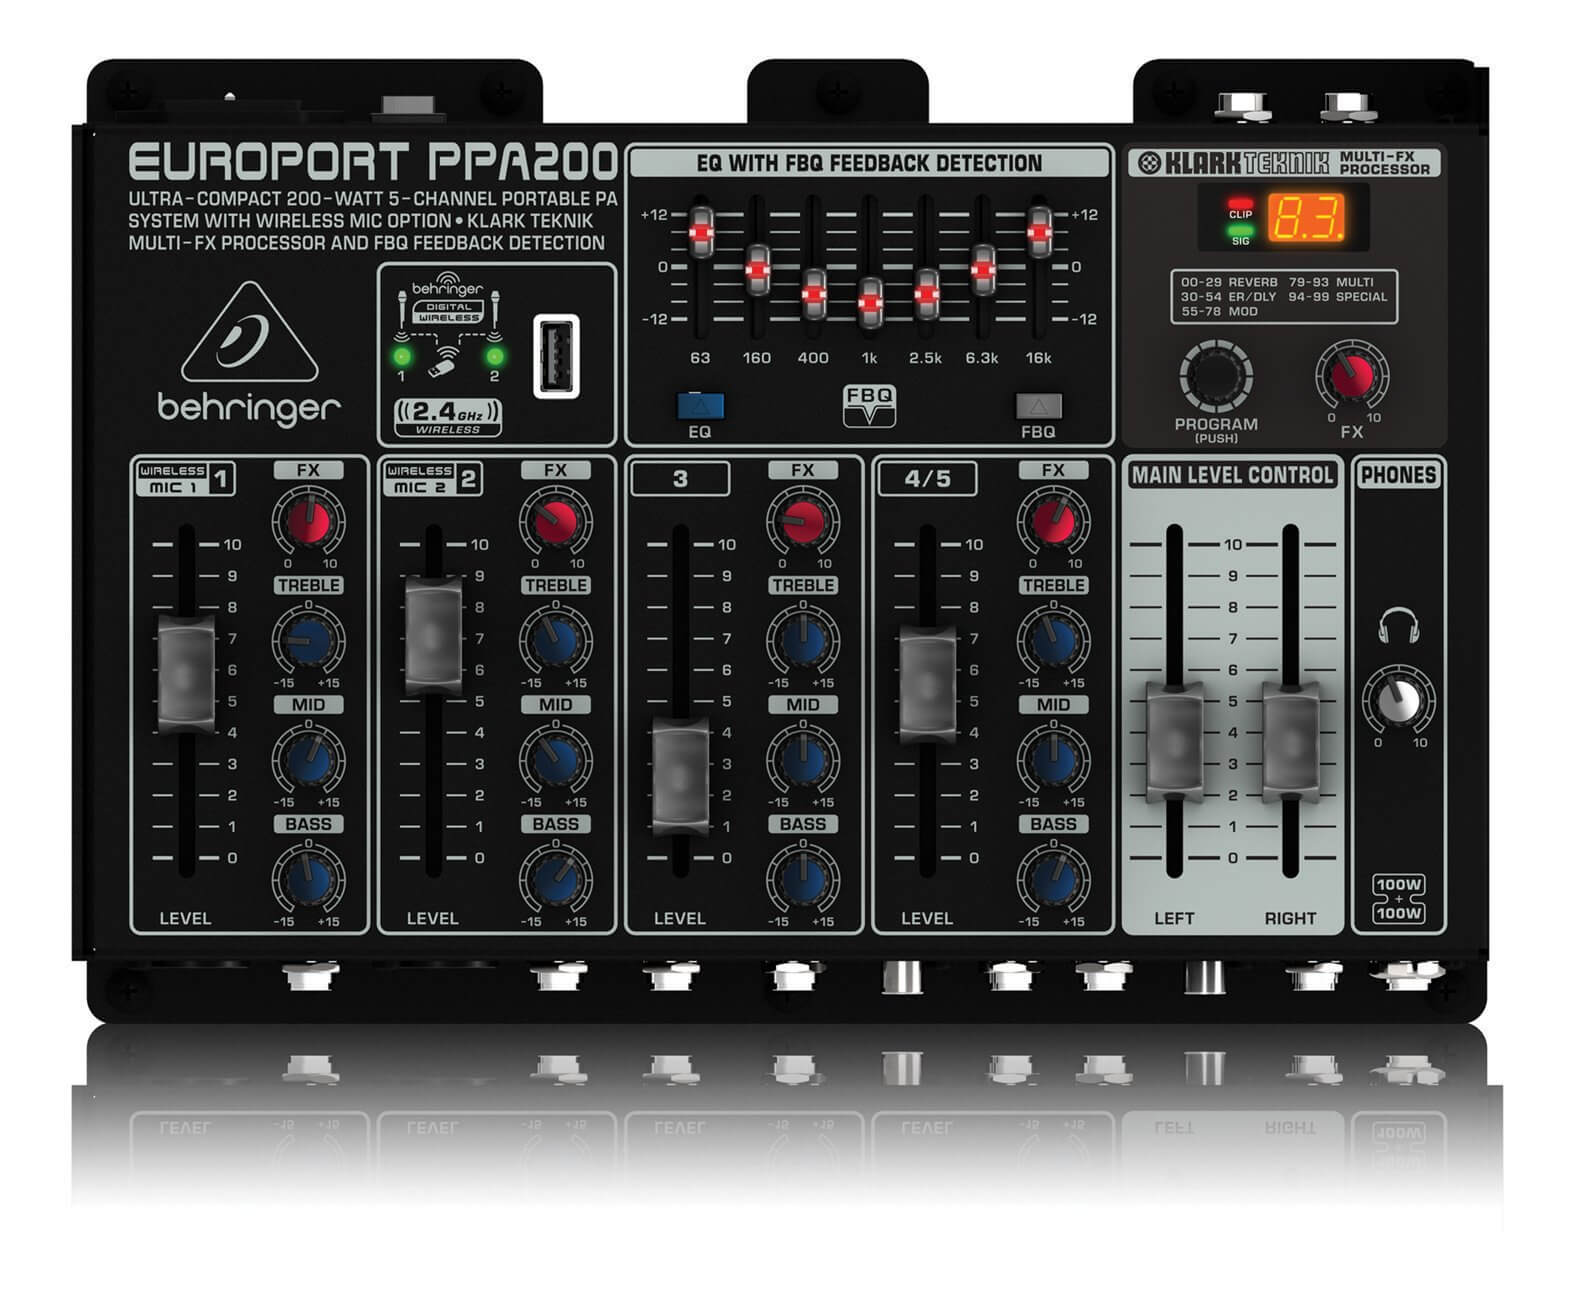 Behringer PPA200 Europort Portable PA System